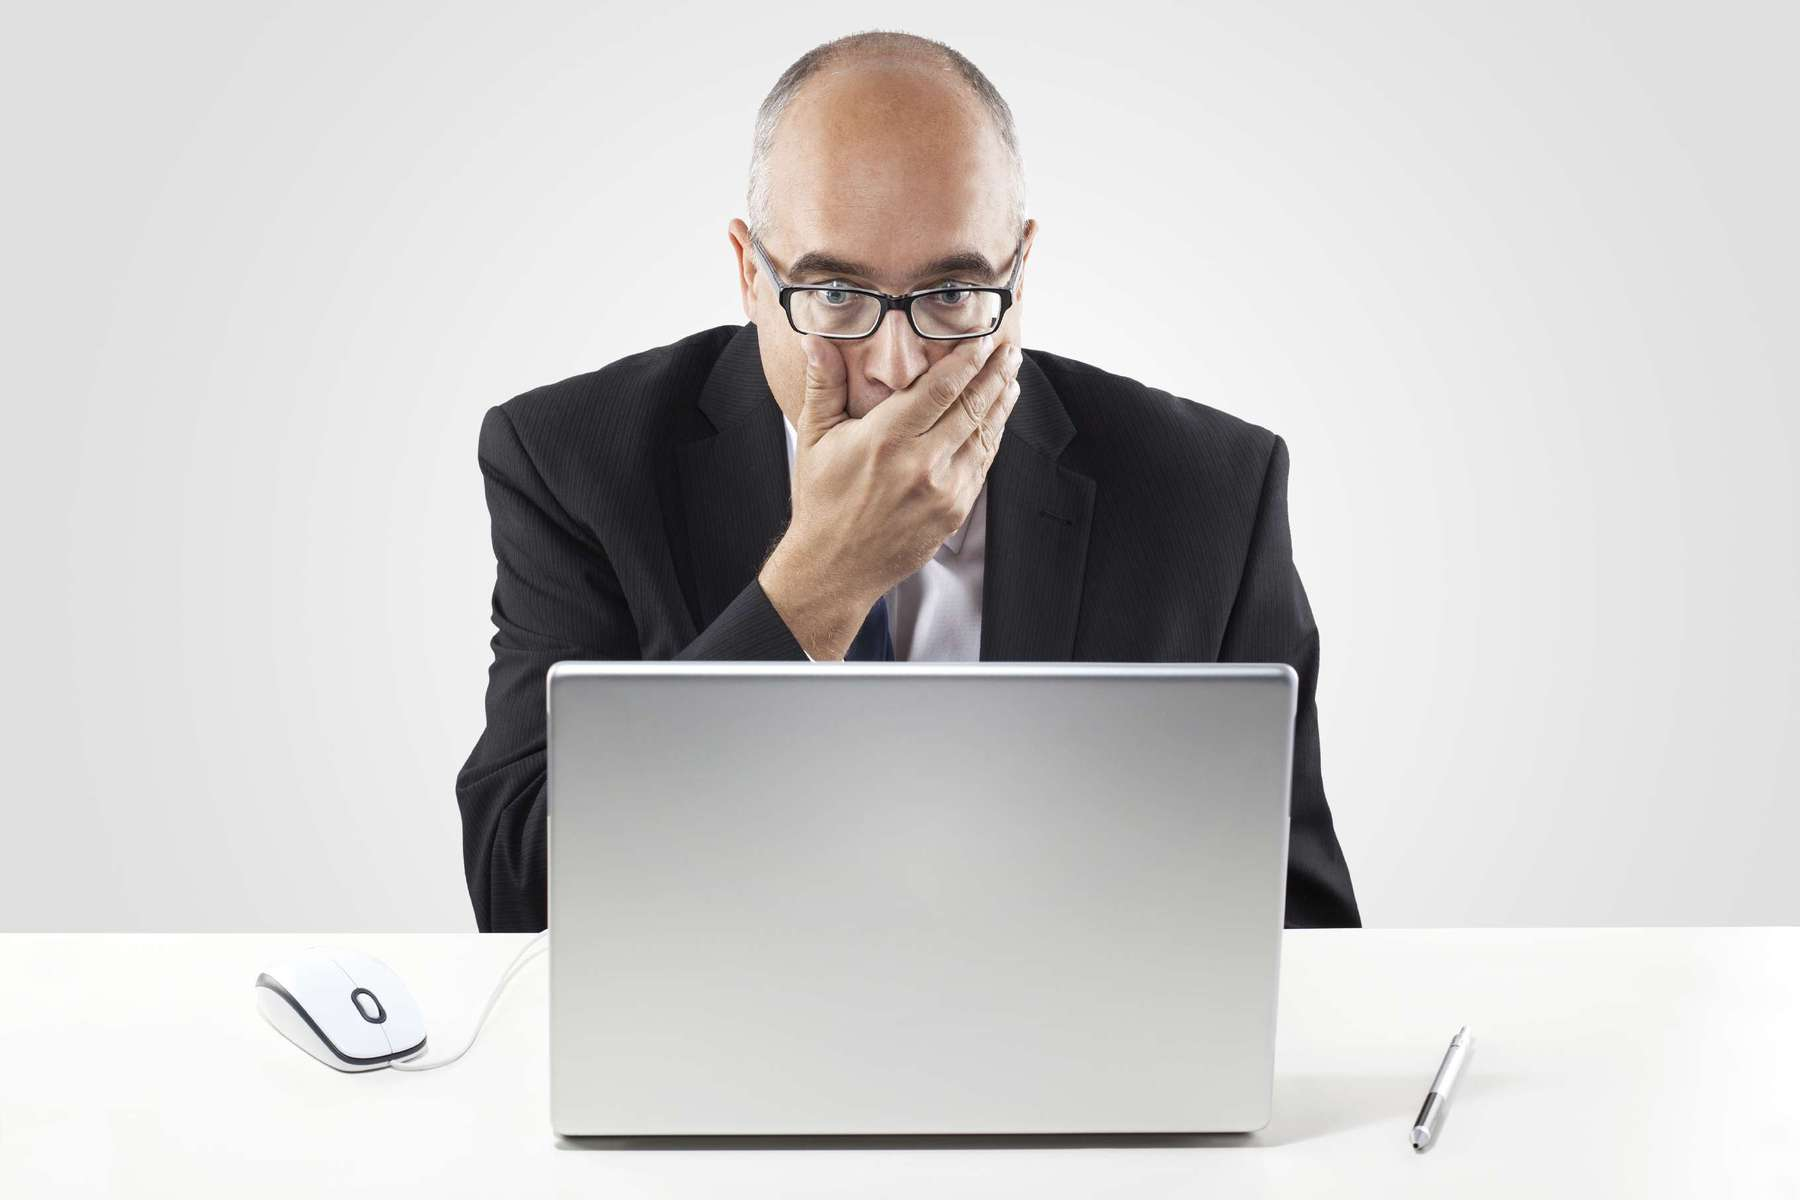 60 Of Employers Are Peeking Into Candidates Social Media